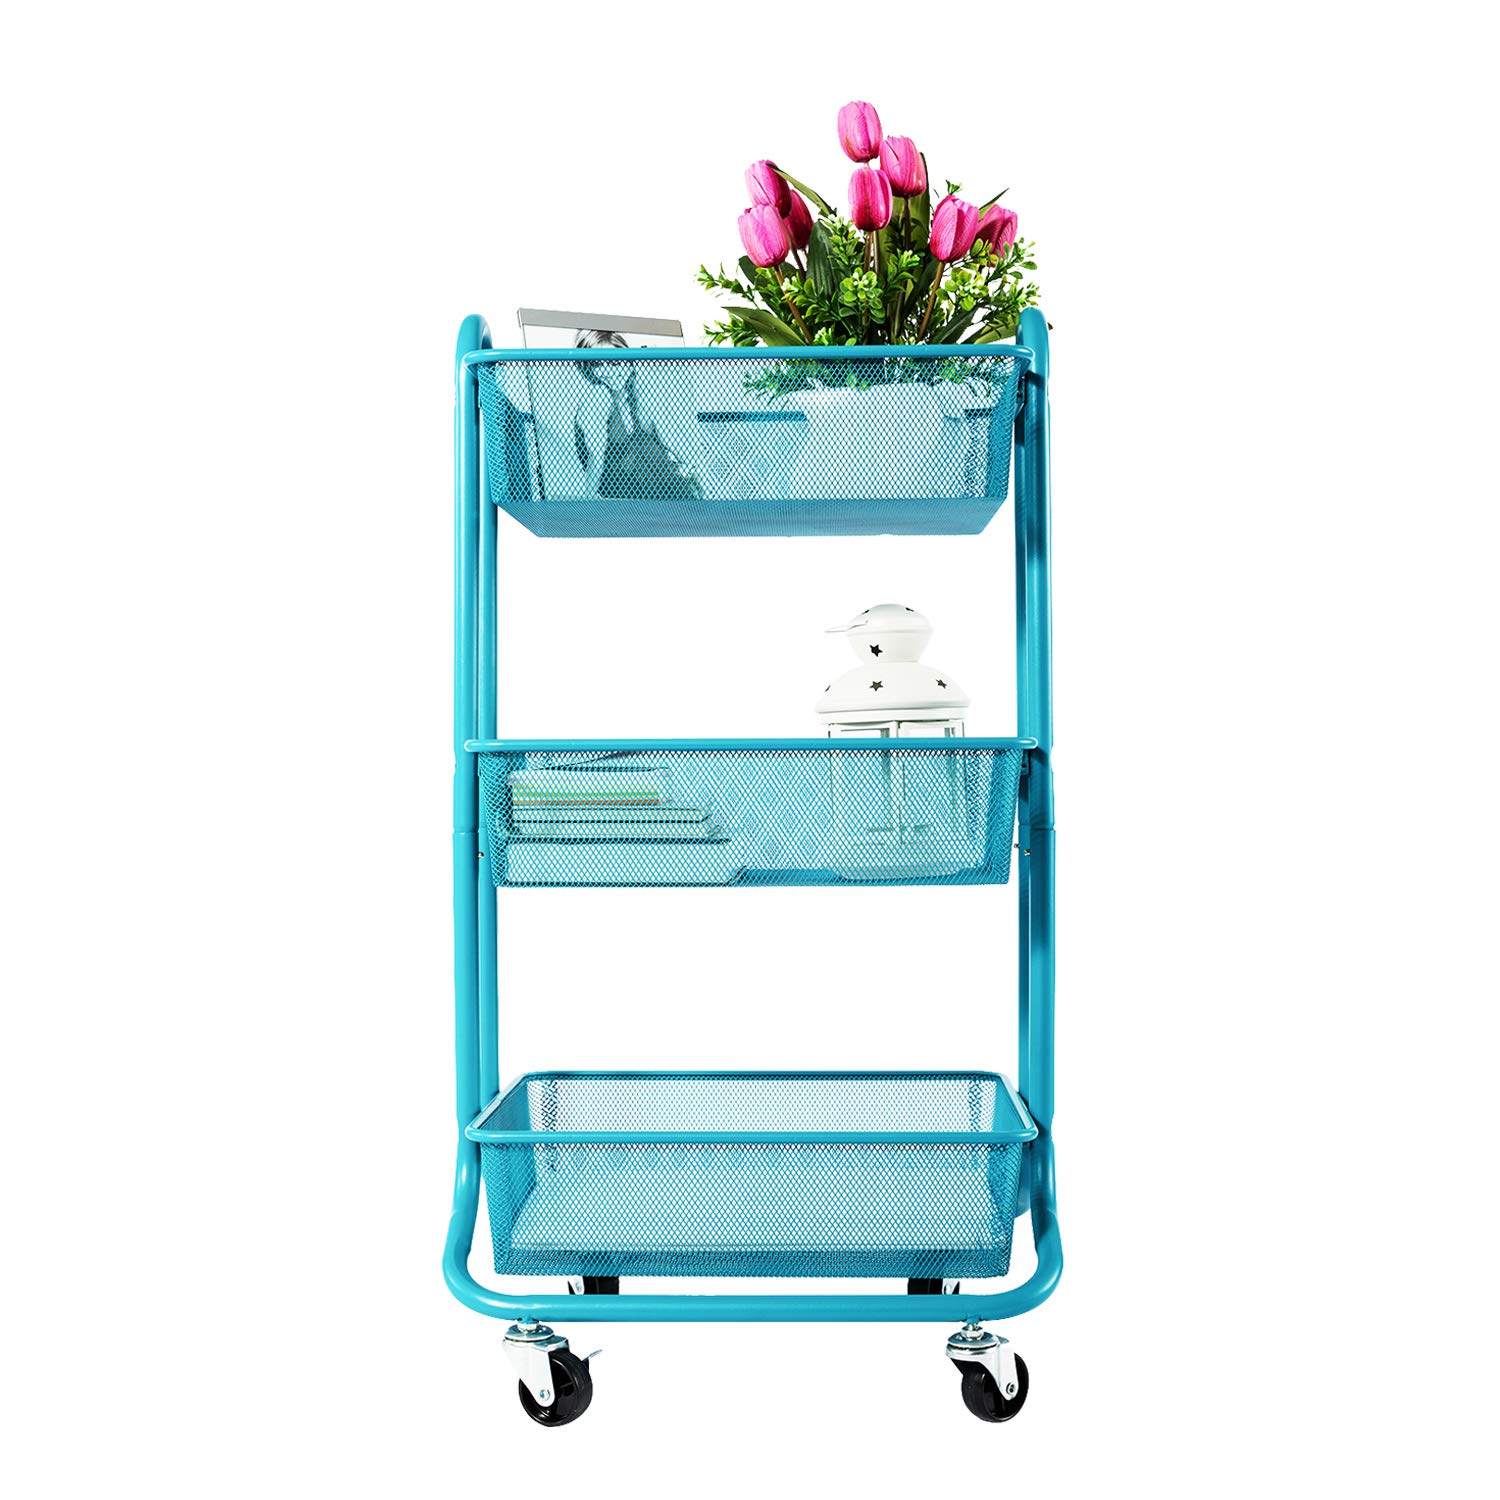 DESIGNA 3-Tier Mesh Utility Cart, Rolling Storage Art Carts with Handle Turquoise by DESIGNA